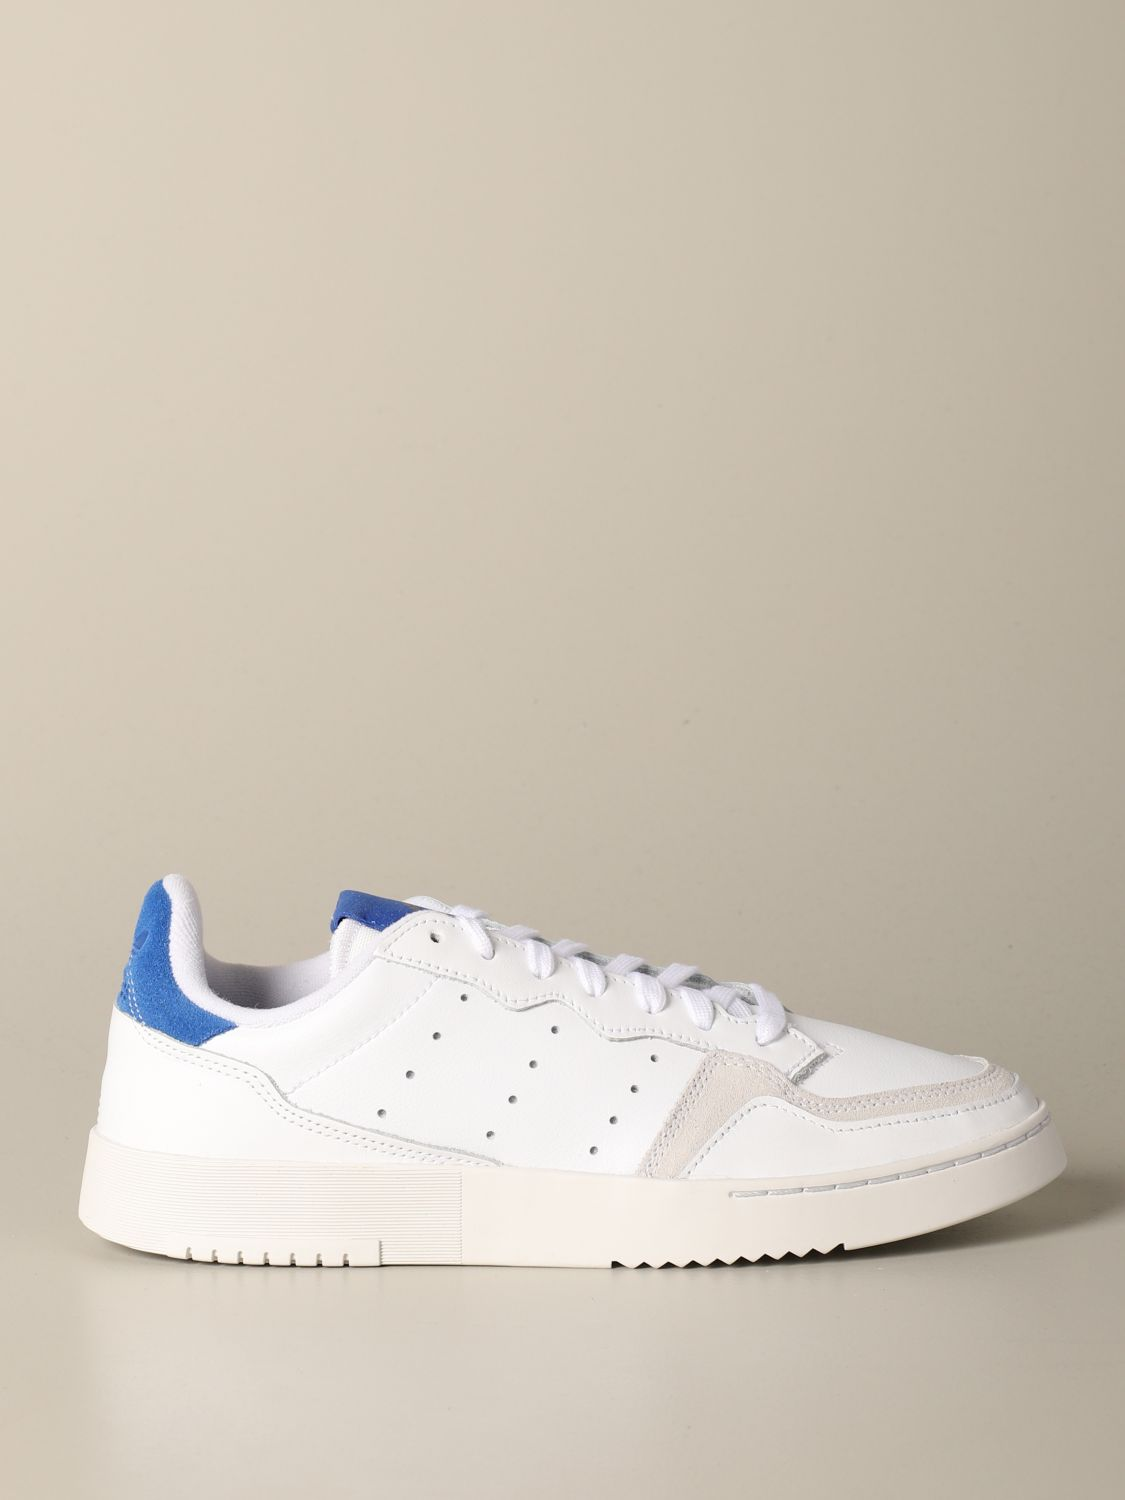 Sneakers Adidas Originals: Sneakers Supercourt Adidas Originals in pelle e camoscio bianco 1